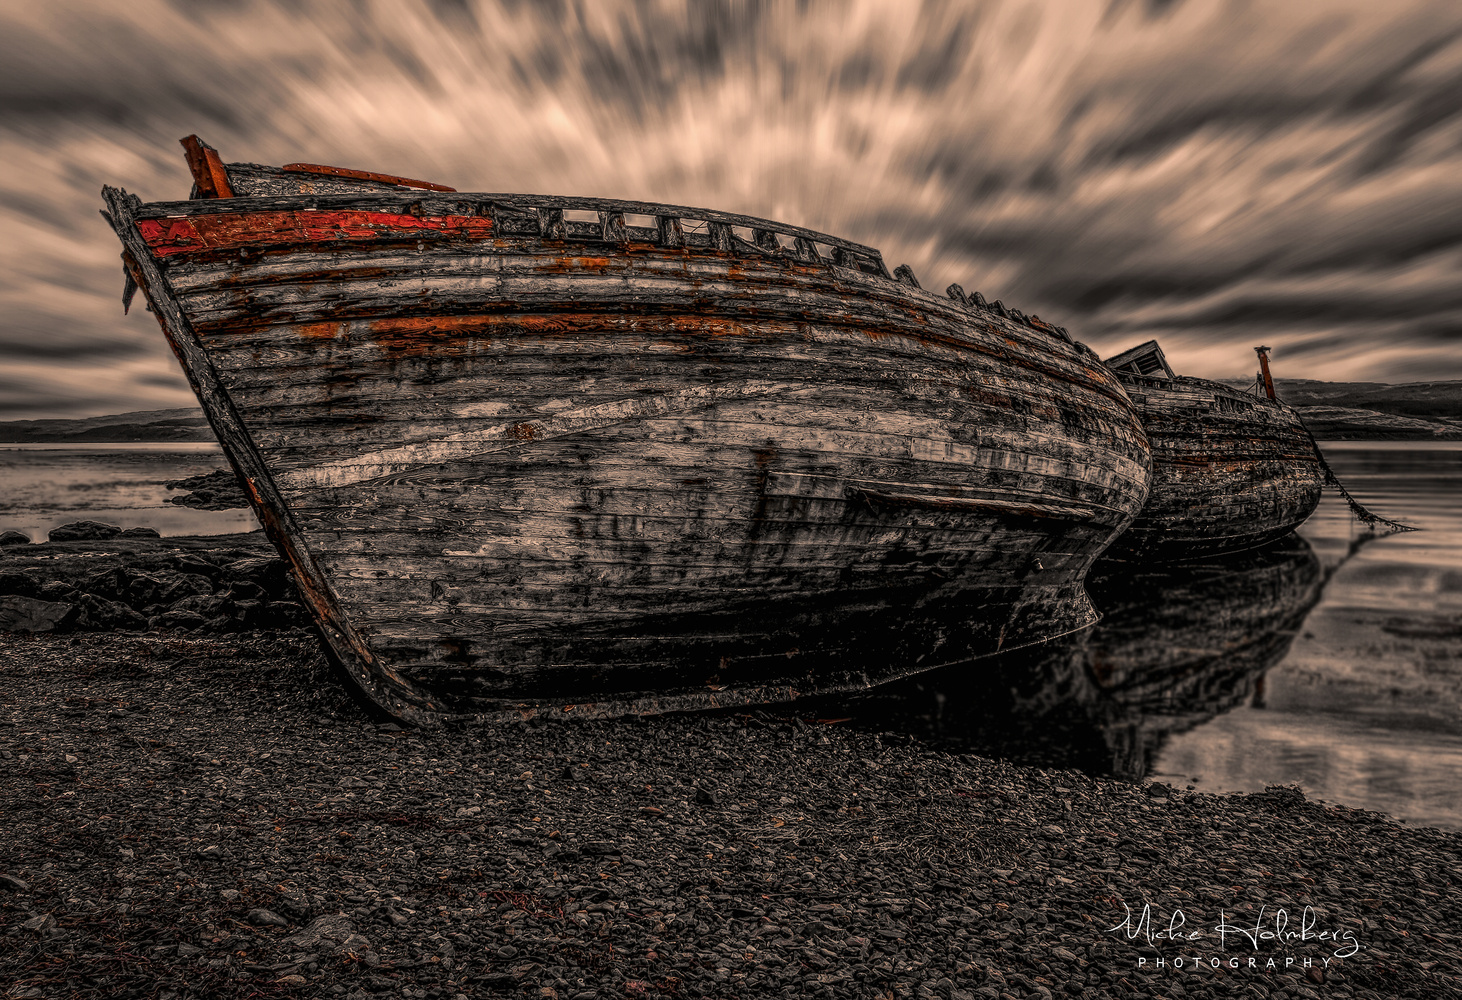 The Forgotten by Micke Holmberg